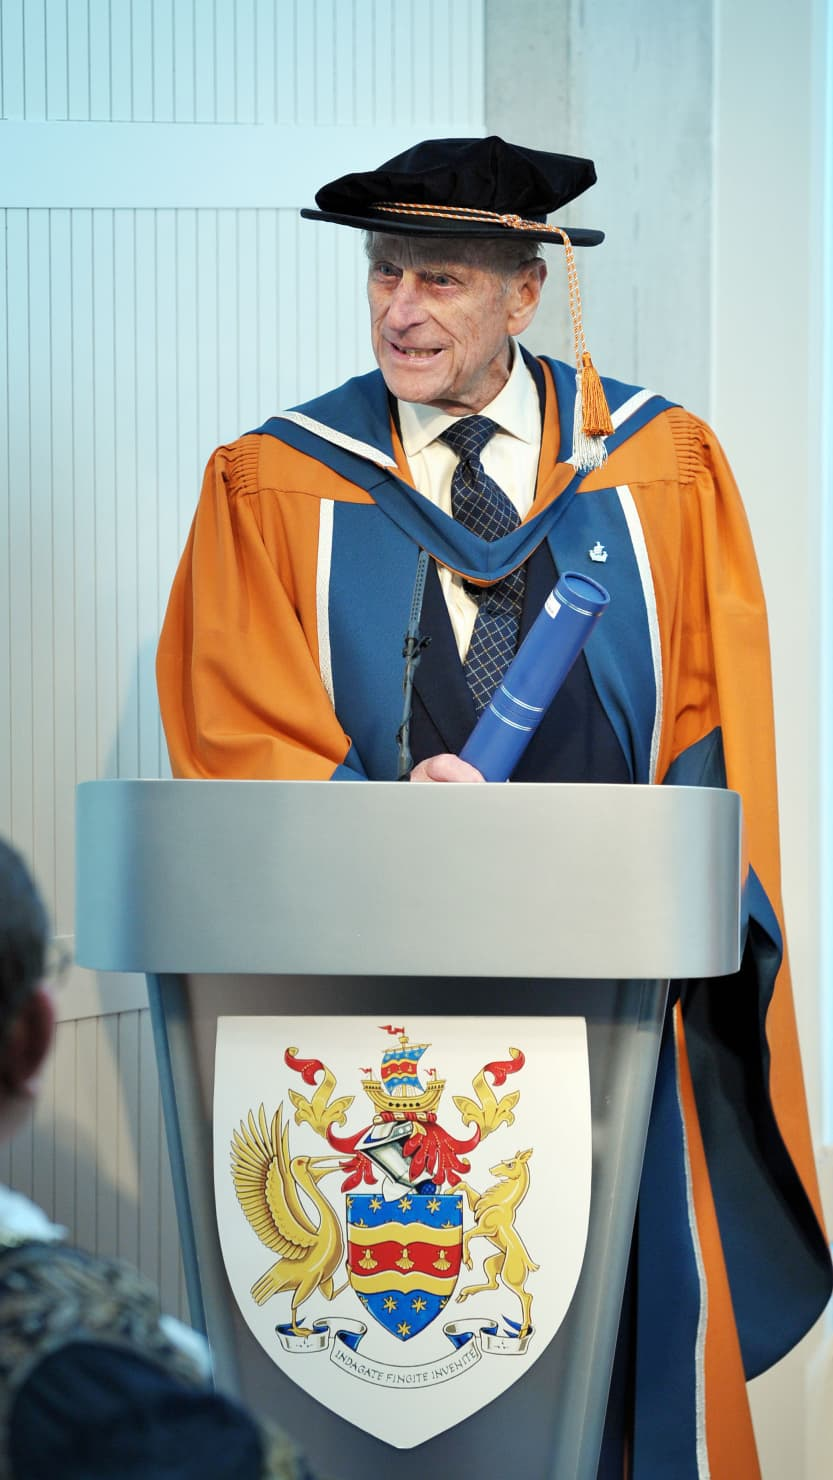 Prince Philip receives his Honorary Doctorate Degree in Marine Science from the University of Plymouth in 2012